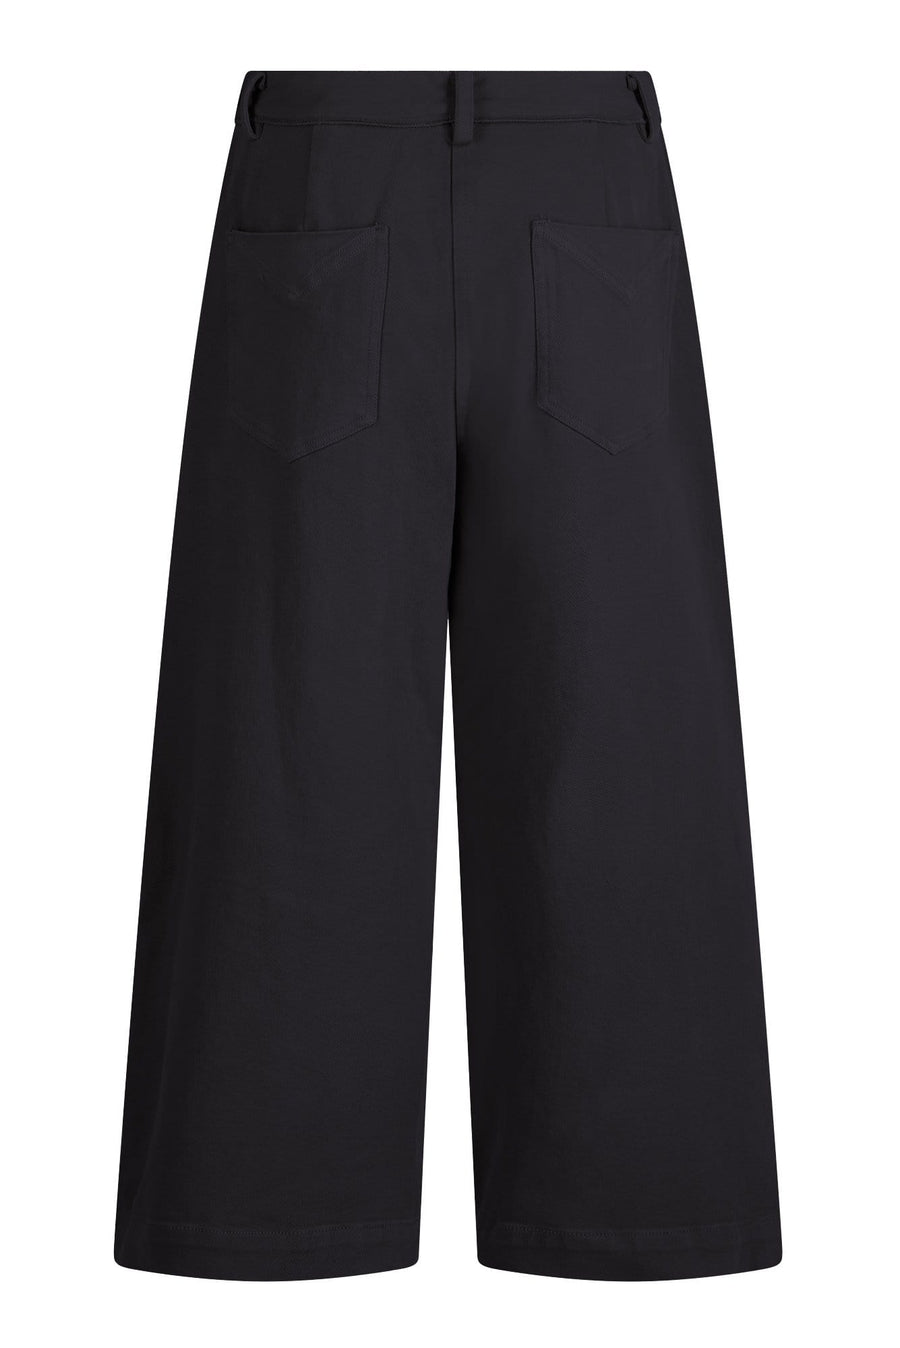 KOMODO Culottes HOLY COW Organic Cotton Culottes Coal sustainable fashion ethical fashion